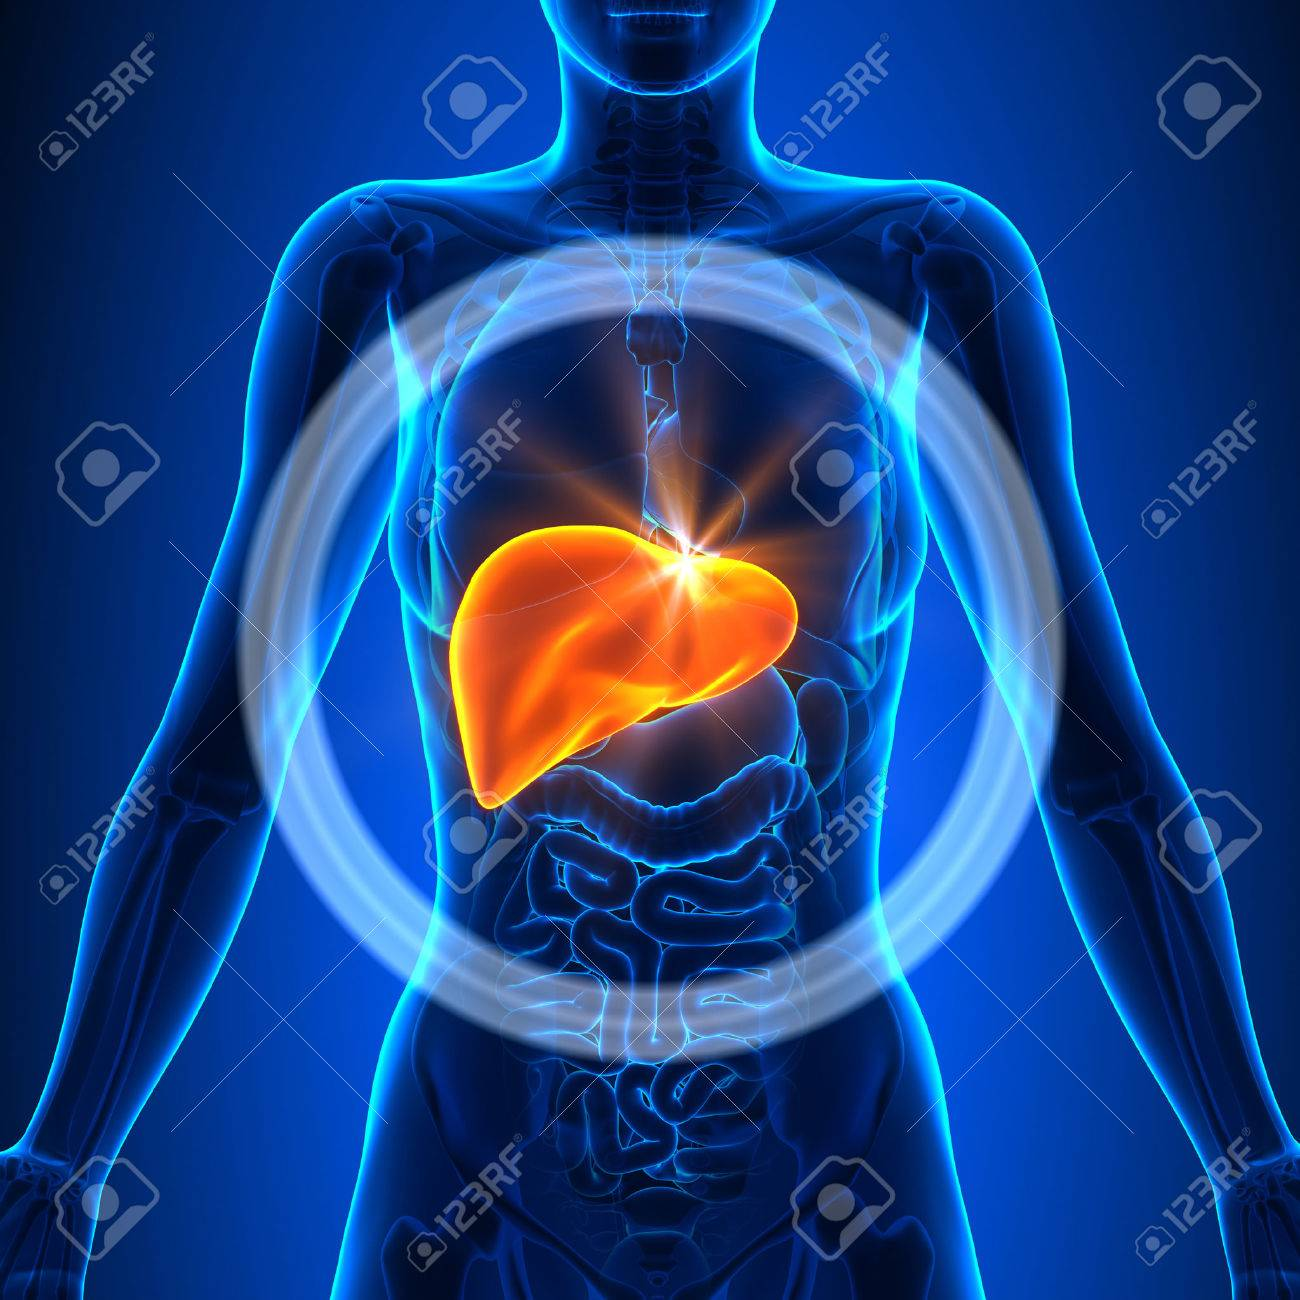 Liver Female Organs Stock Photo Picture And Royalty Free Image